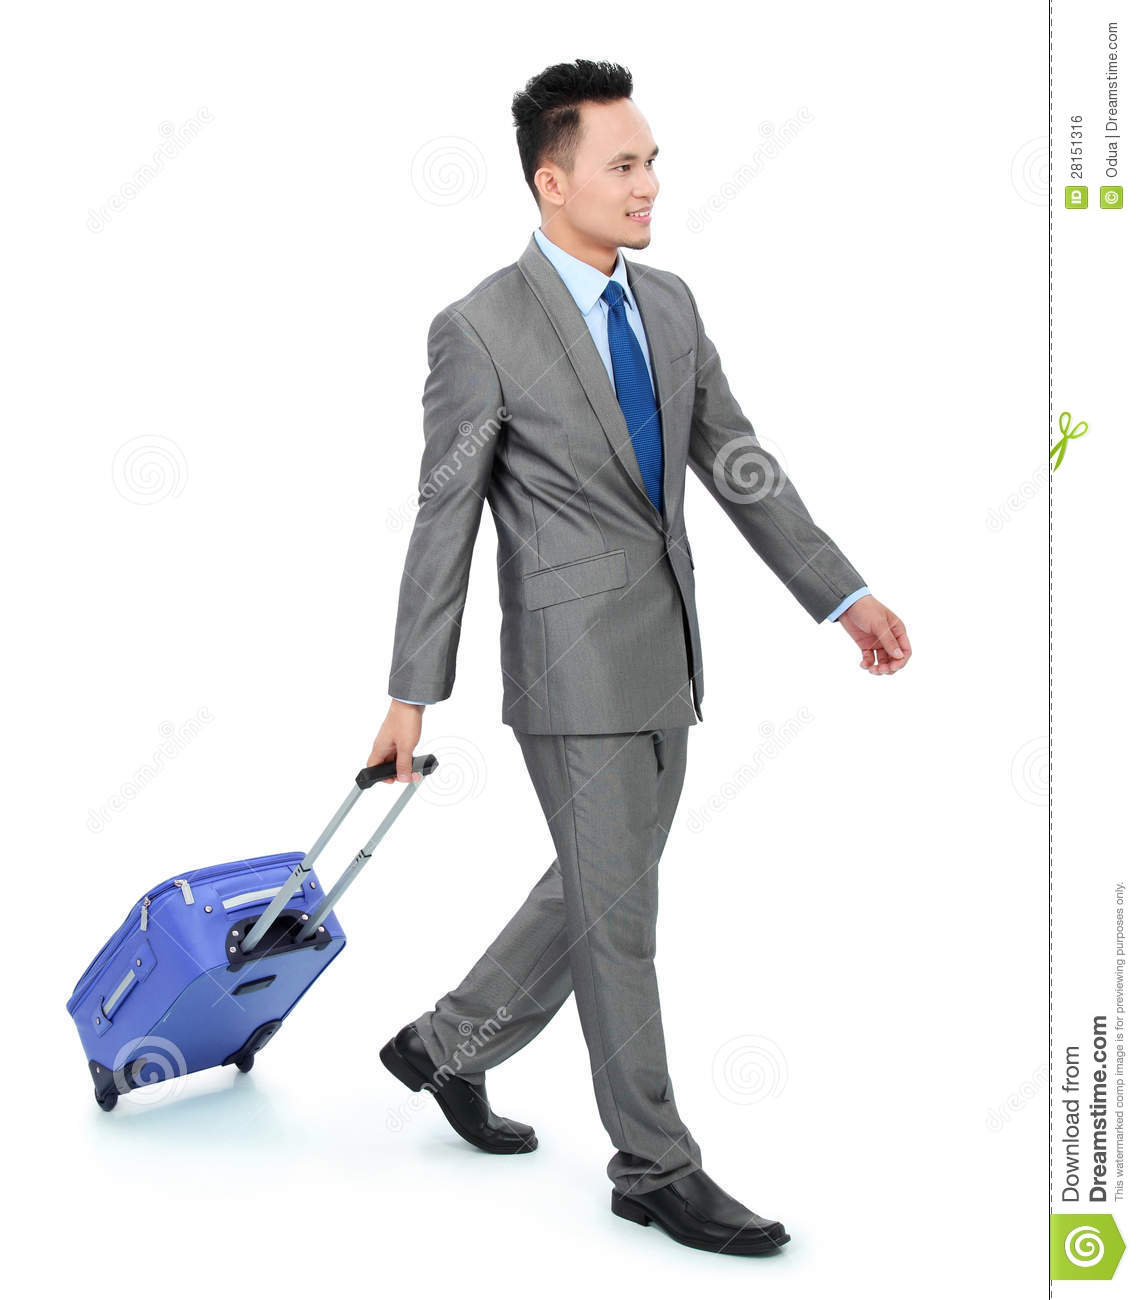 Man Going On A Business Trip Royalty Free Stock Image - Image ...